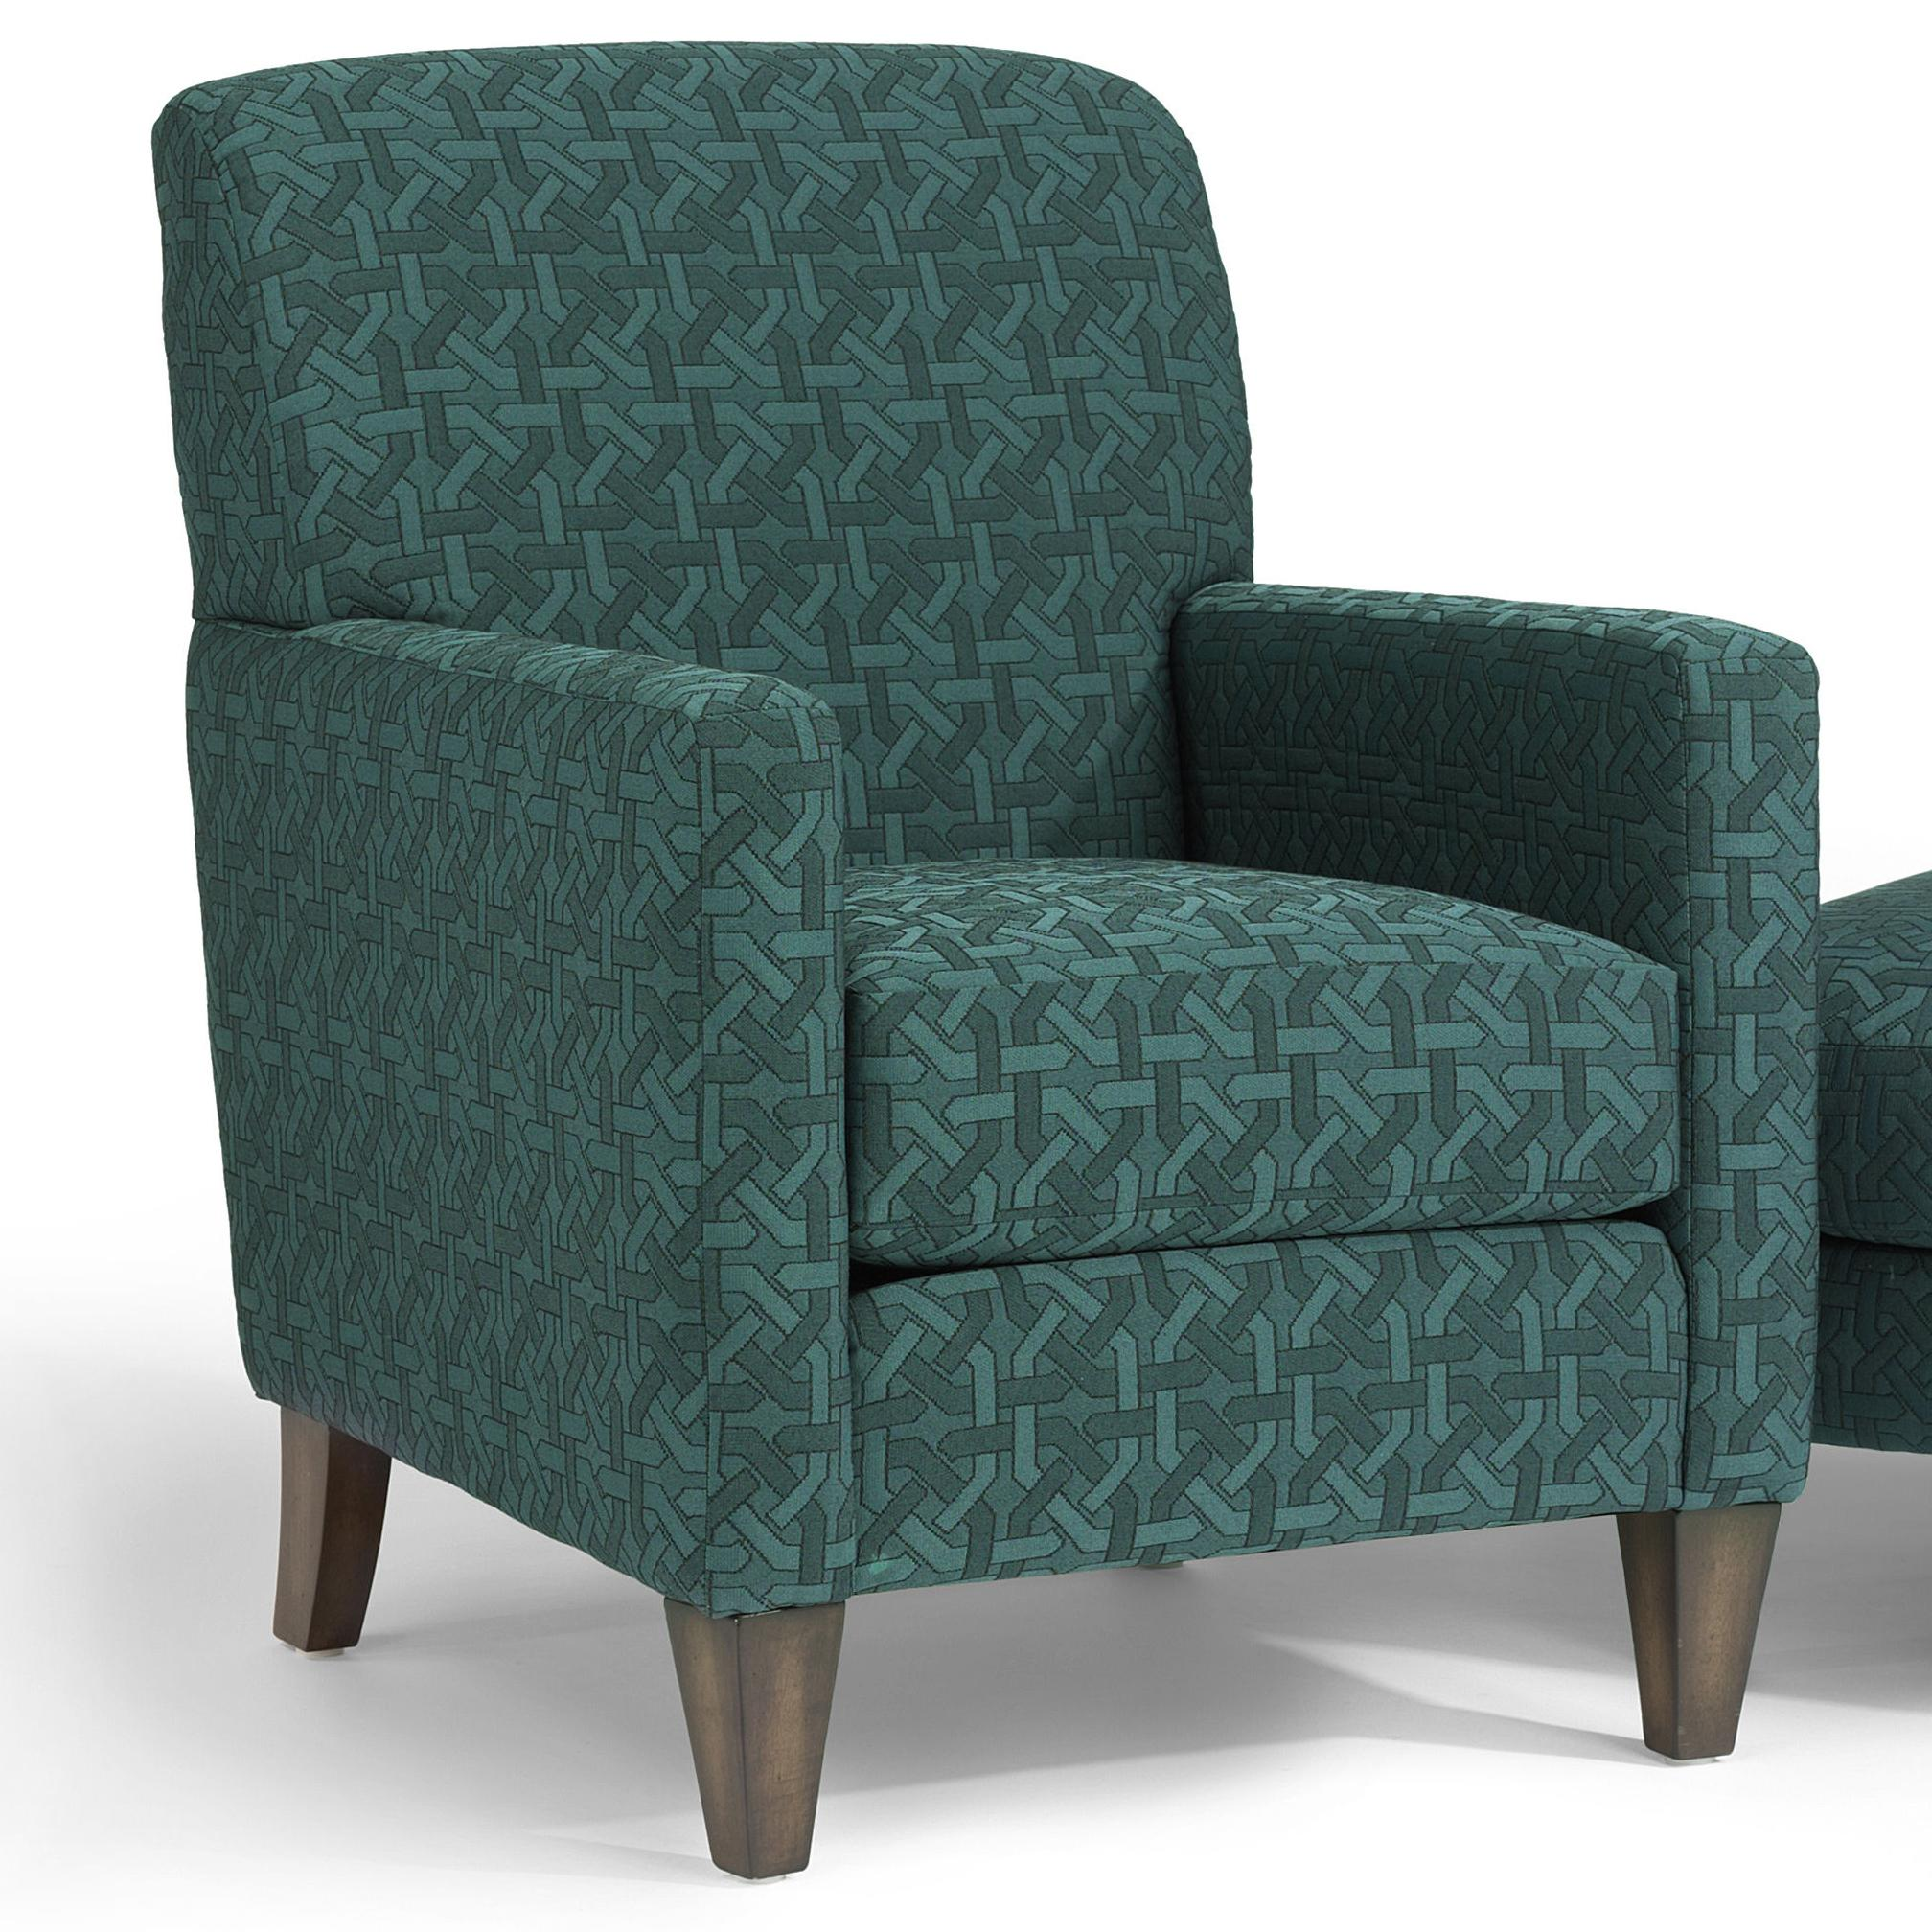 Flexsteel accents 0410 10 cute chair hudson 39 s furniture for Hudsons furniture